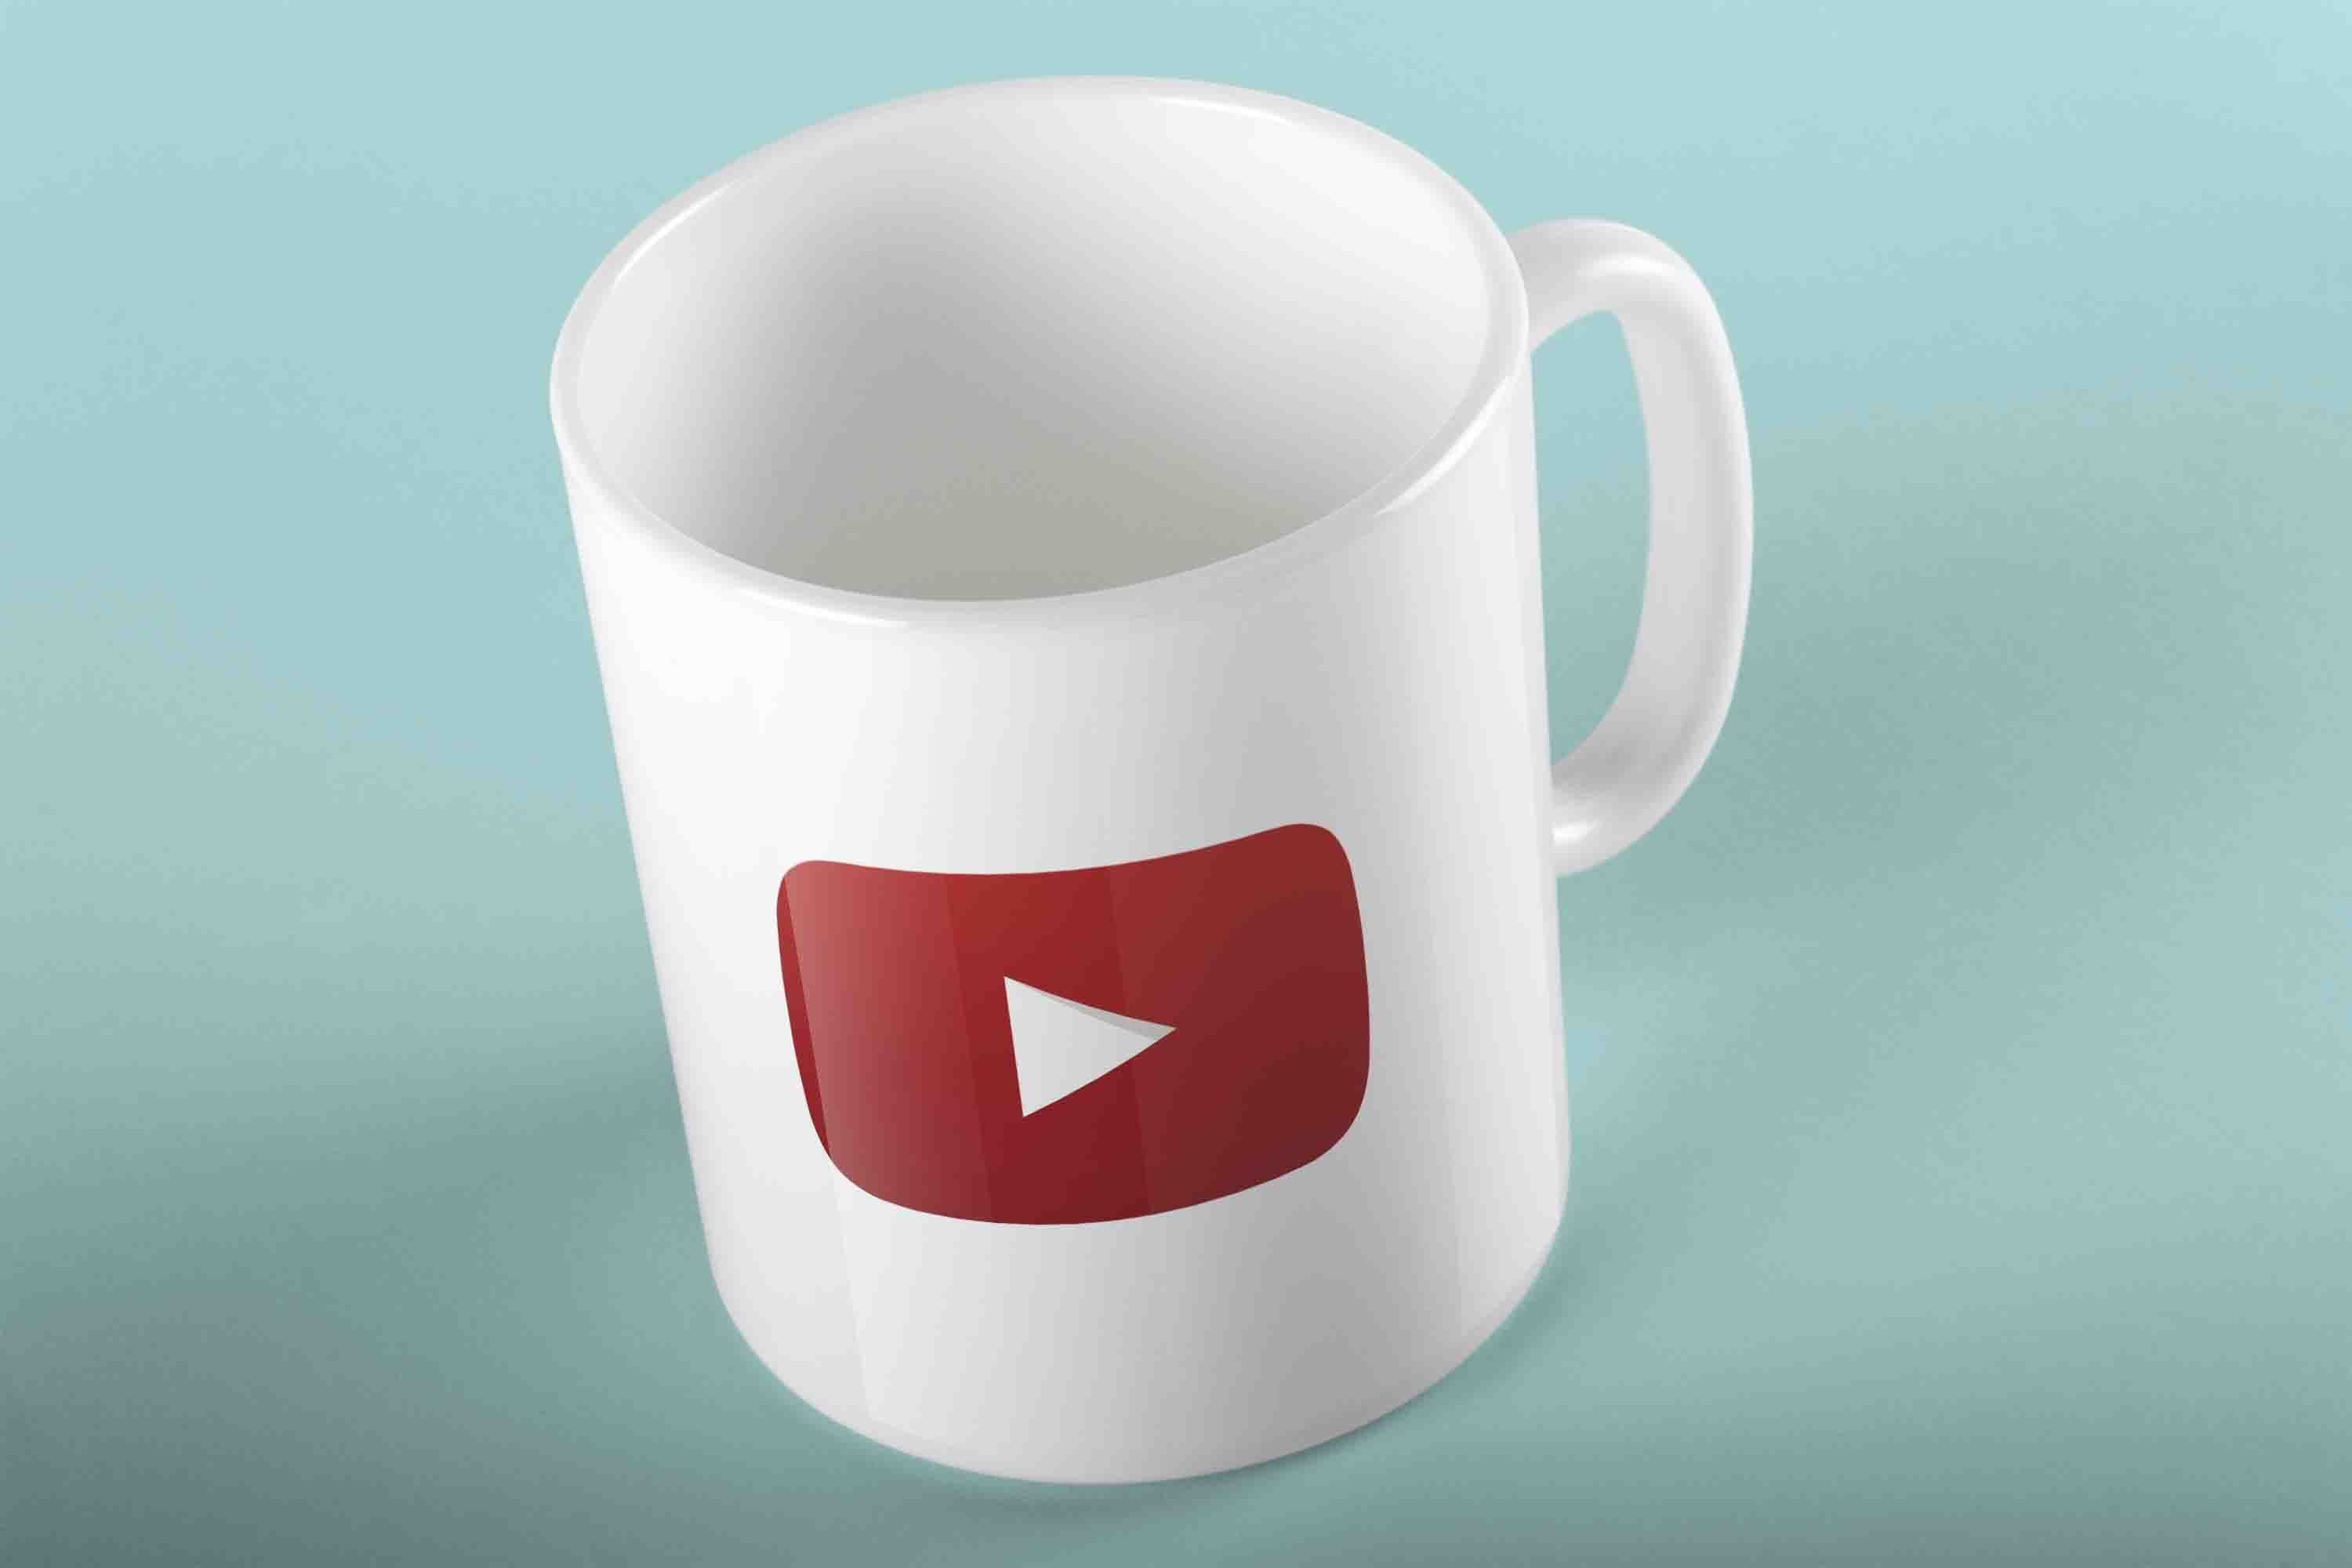 YOUTUBE LOGO MUG